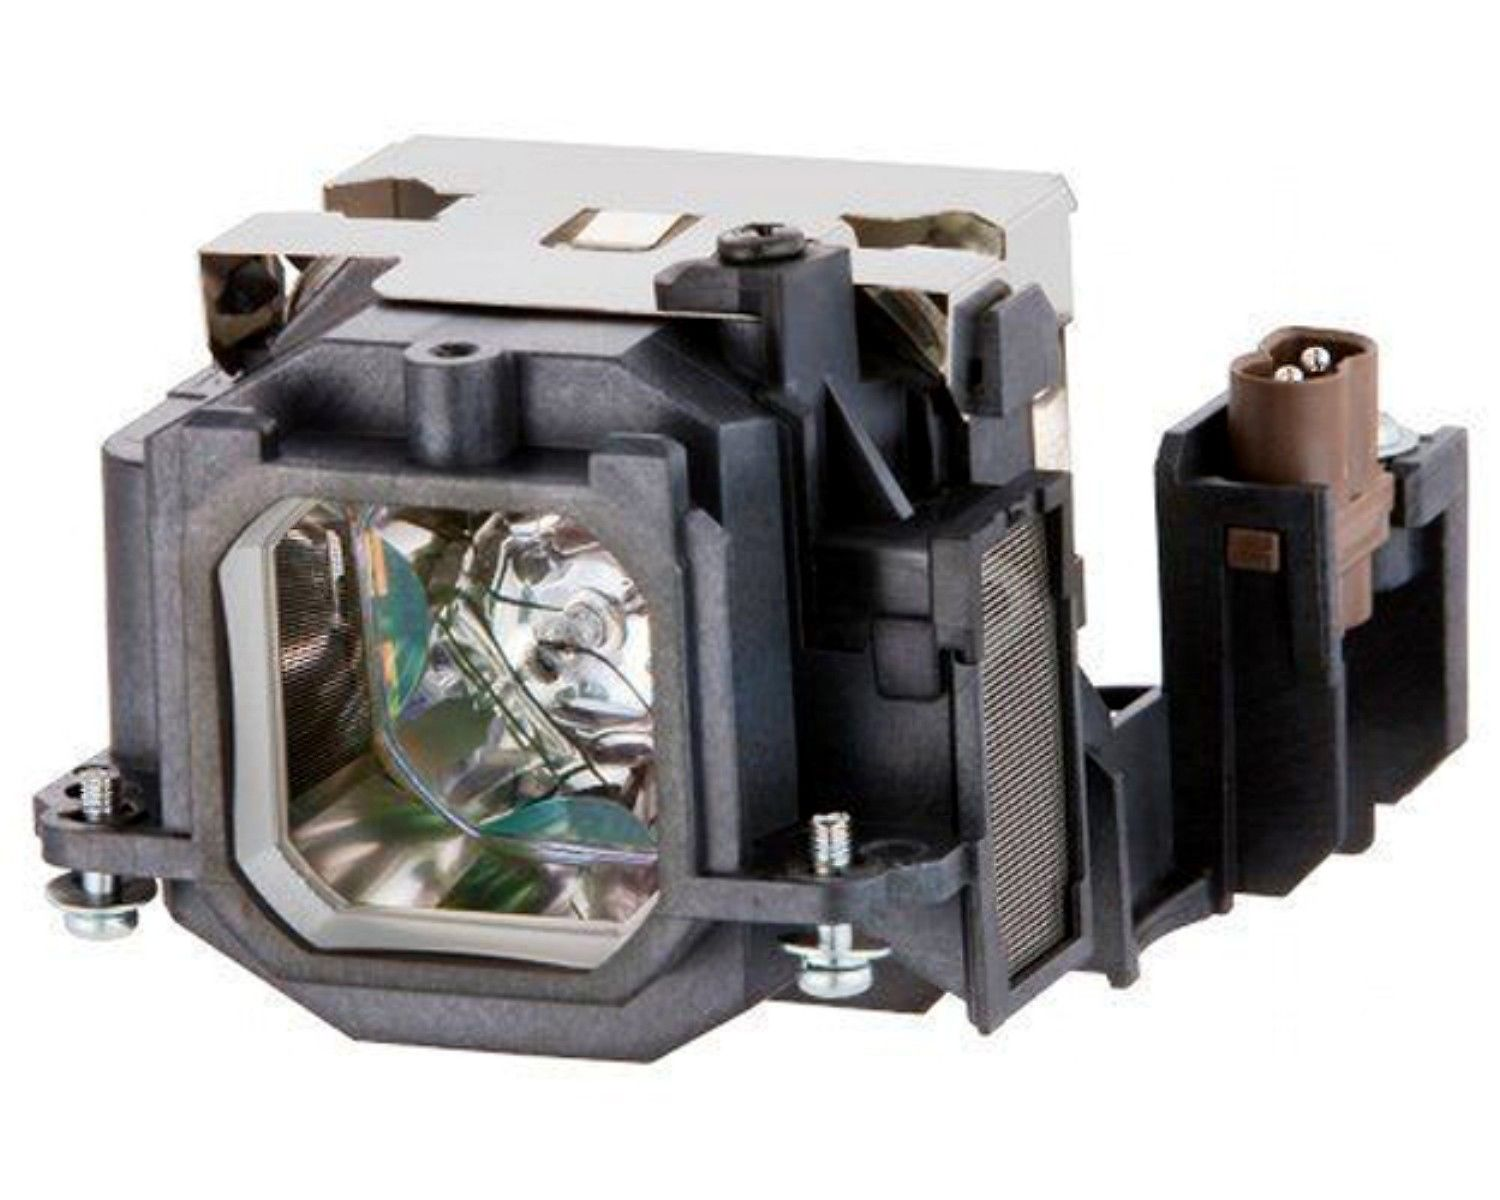 Projector Lamp Bulb ET-LAB2 ETLAB2 for Panasonic PT-LB1 PT-LB2 PT-LB1EA PT-LB2EA PT-ST10 PT-LB3E With Housing et lab10 replacement projector bulb lamp with housing for panasonic pt u1x68 ptl lb20su pt u1x67 pt u1x88 pt px95 pt lb20